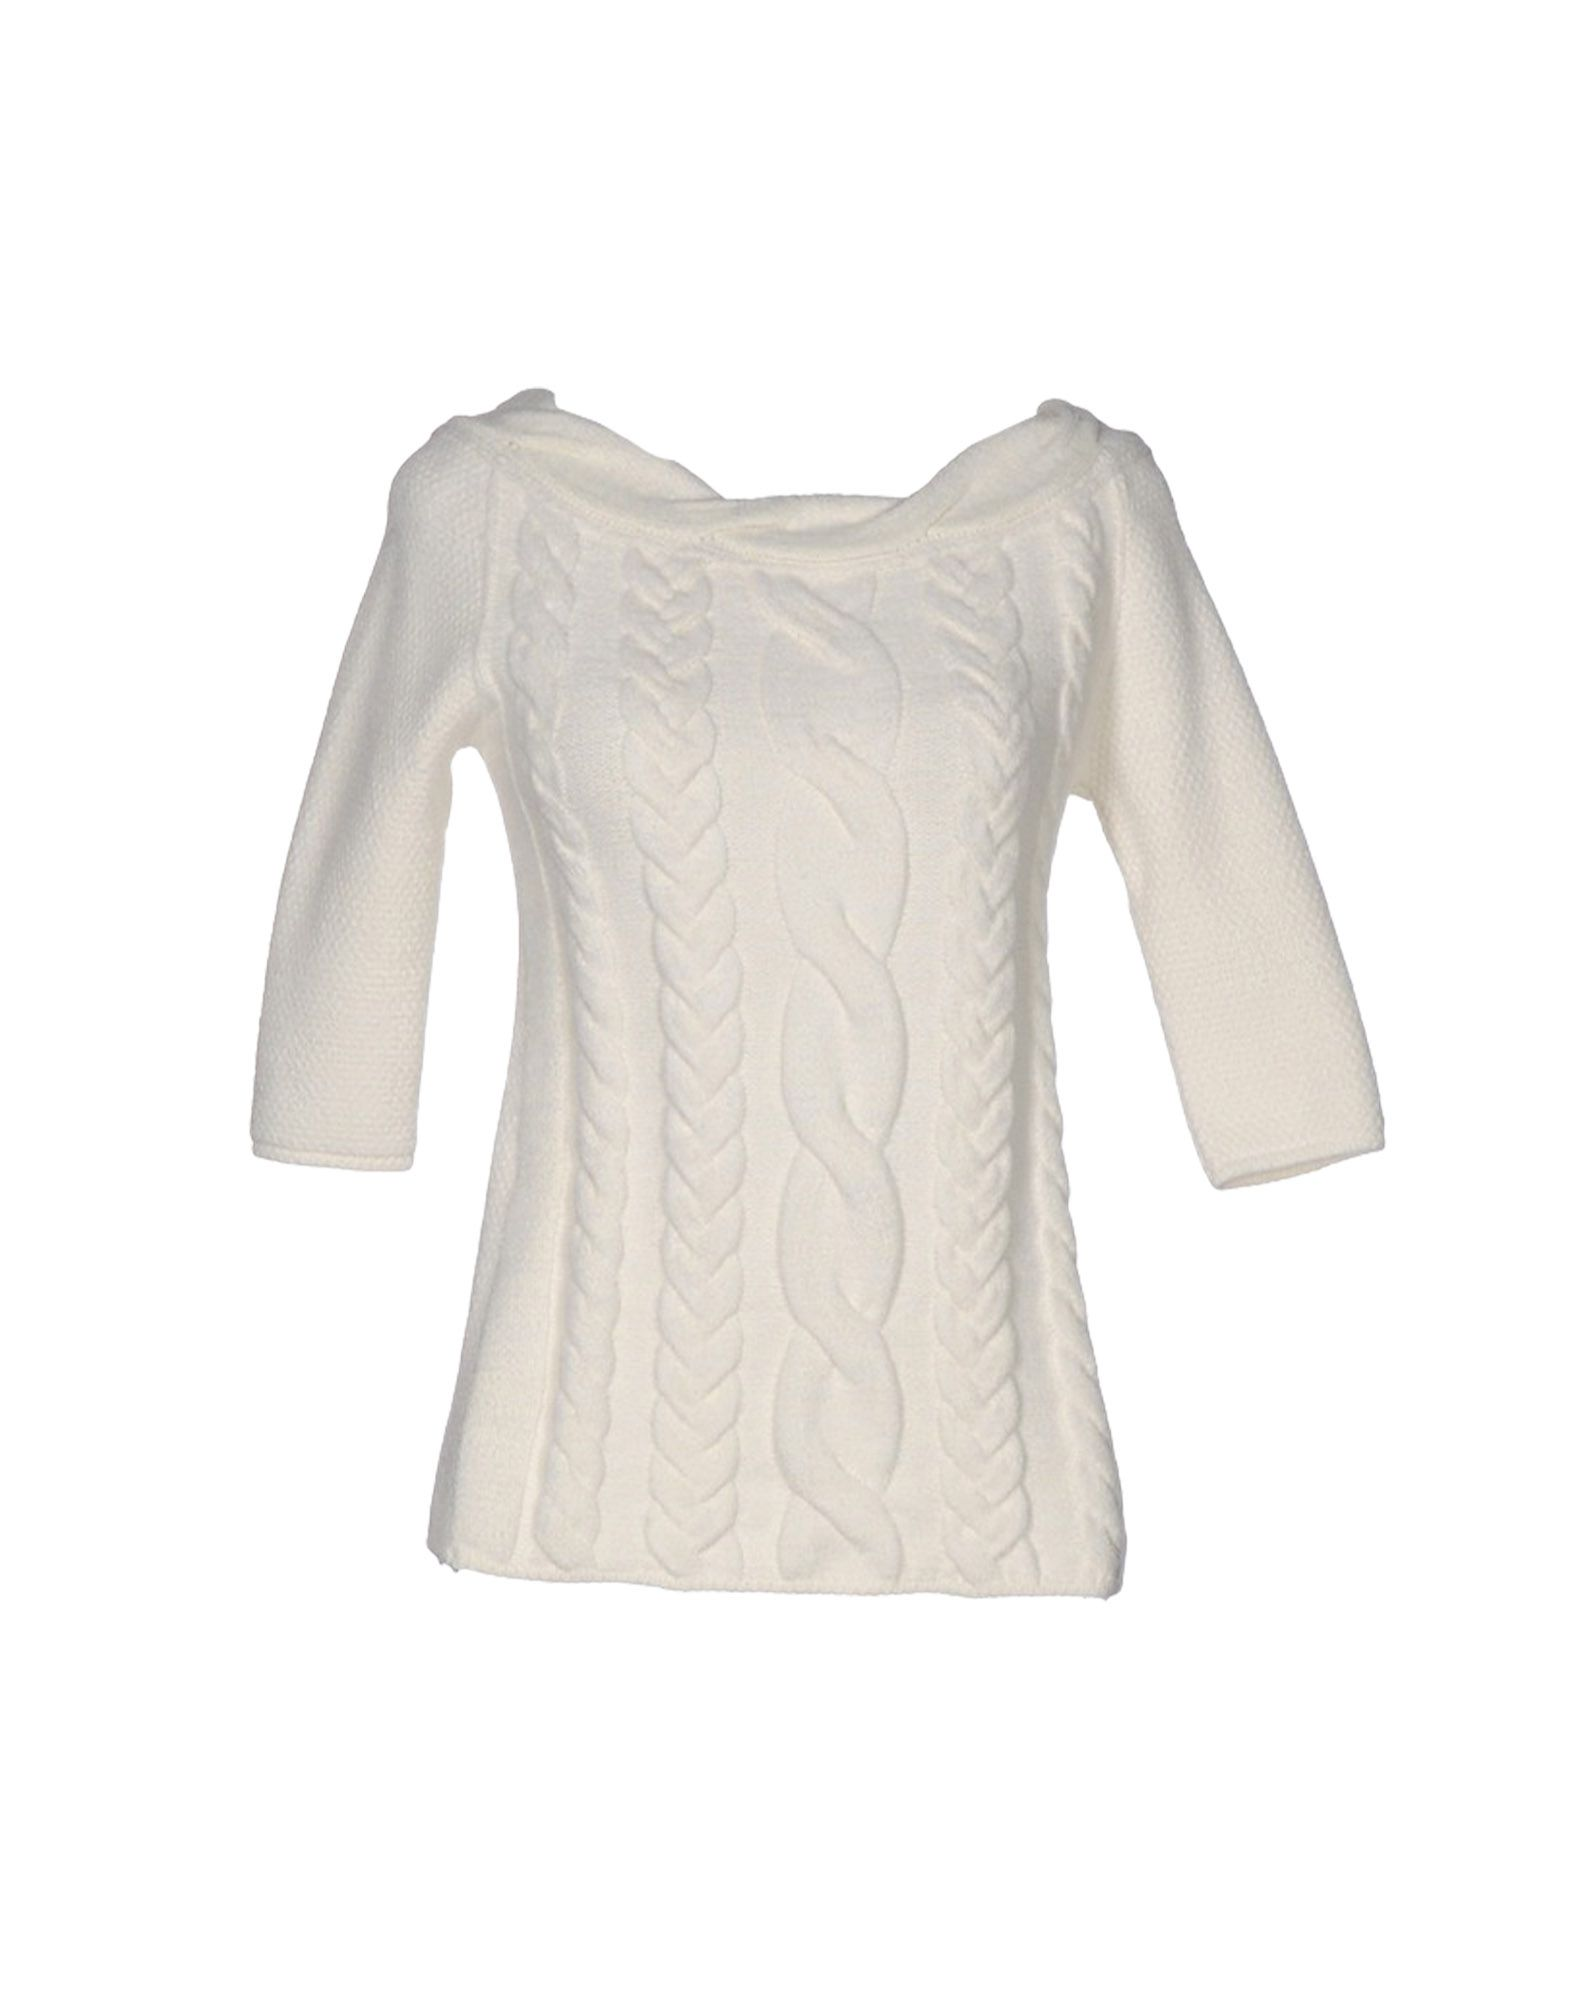 Pullover Vicedomini Donna - Acquista online su